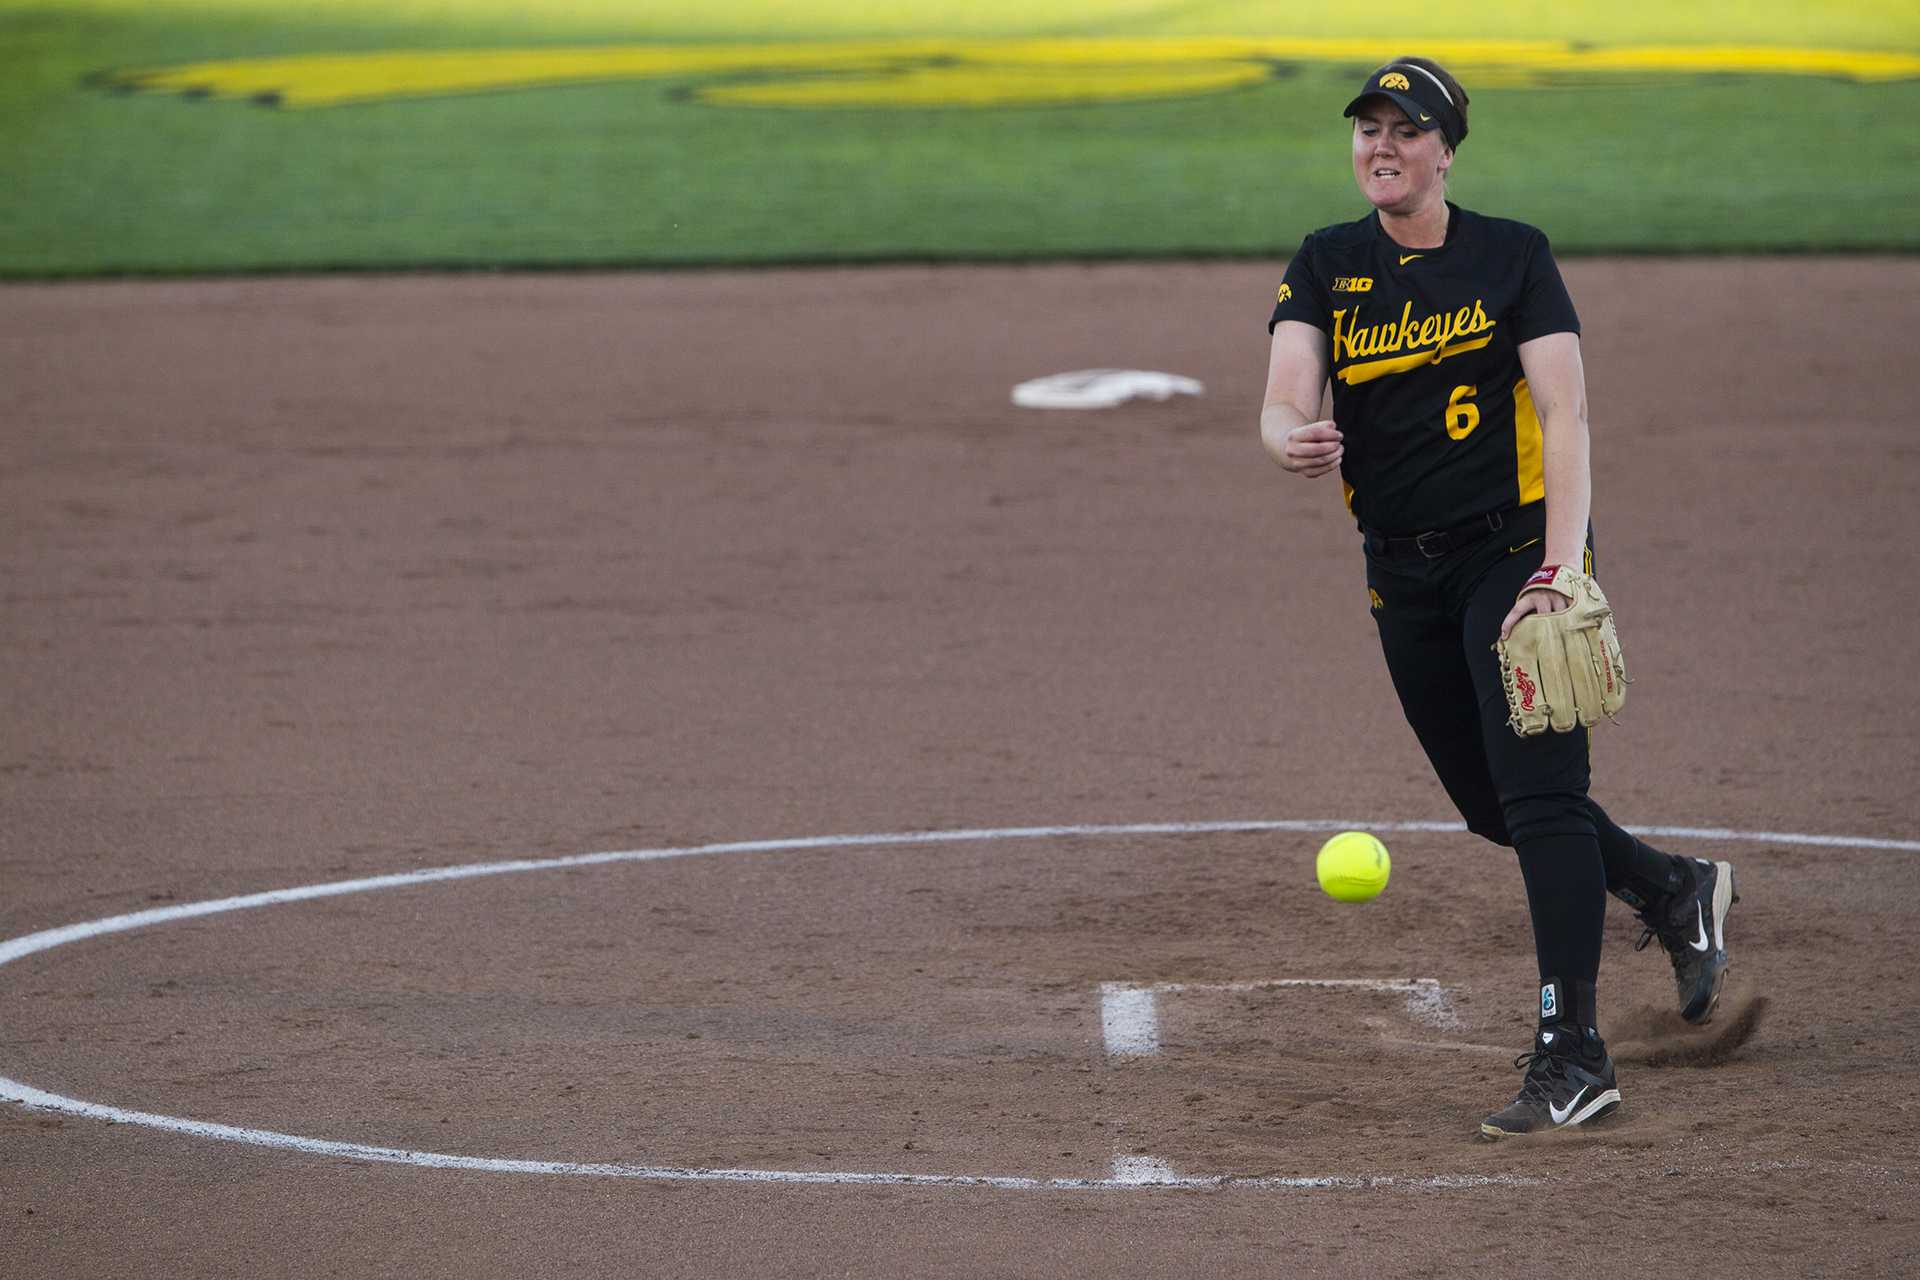 Iowa pitcher Erin Riding throws during a NCAA softball Big Four Classic tournament game at Pearl Field in Coralville on Friday, Sept. 29, 2017. The Panthers defeated the Hawkeyes, 3-0. (Joseph Cress/The Daily Iowan)